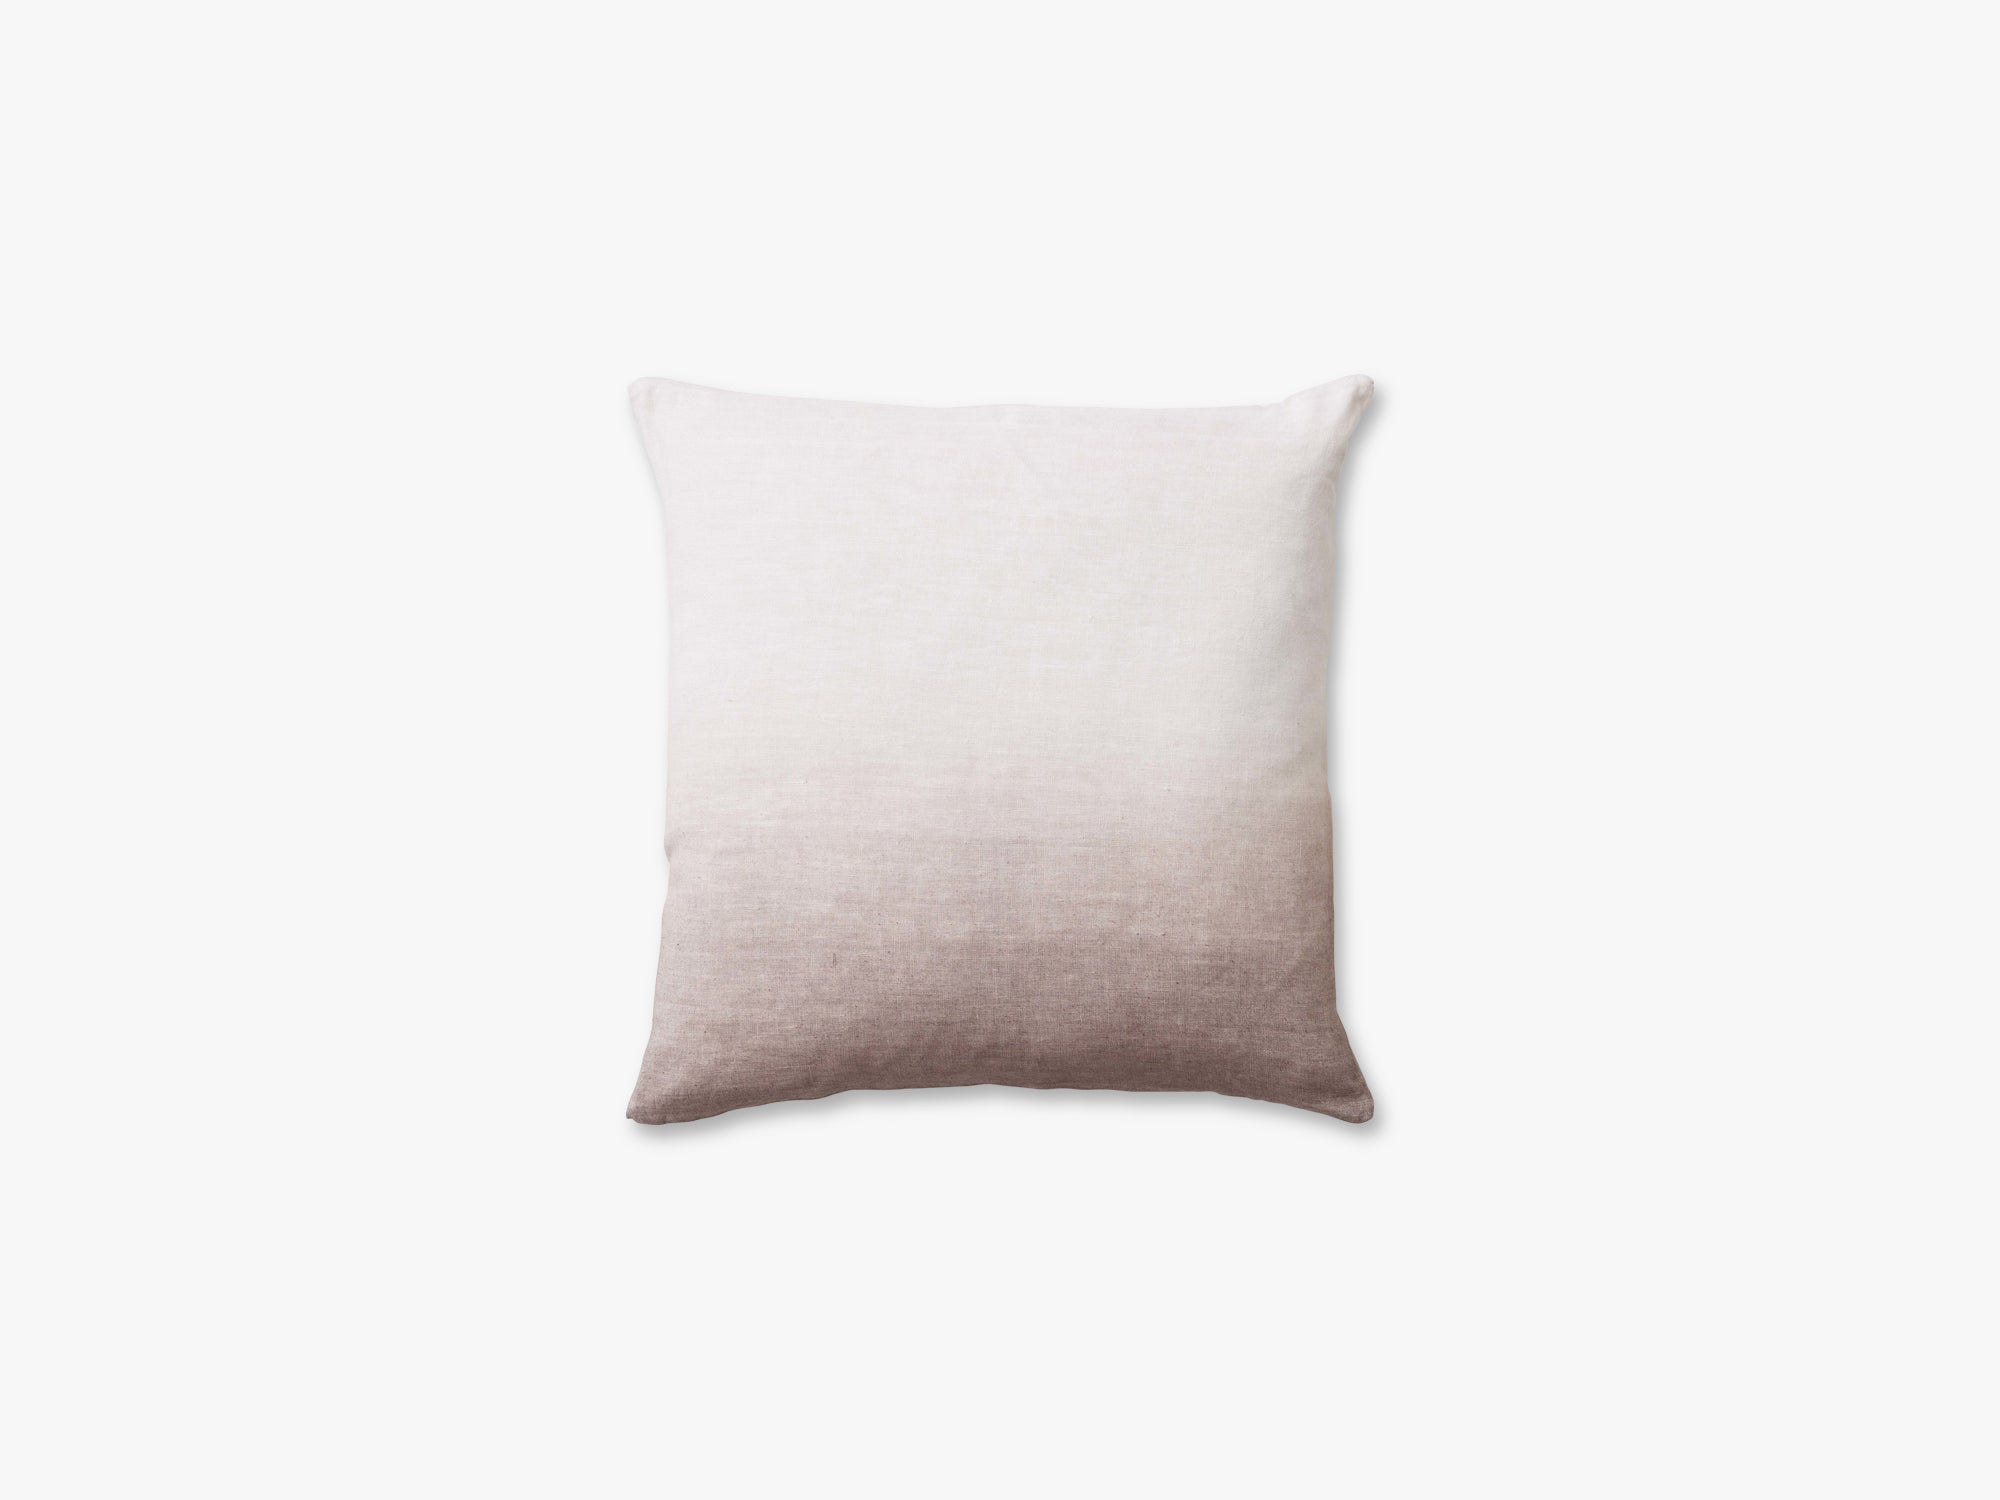 Collect Cushion SC28 - 50x50, Milk&Powder/Linen Indigo fra &tradition